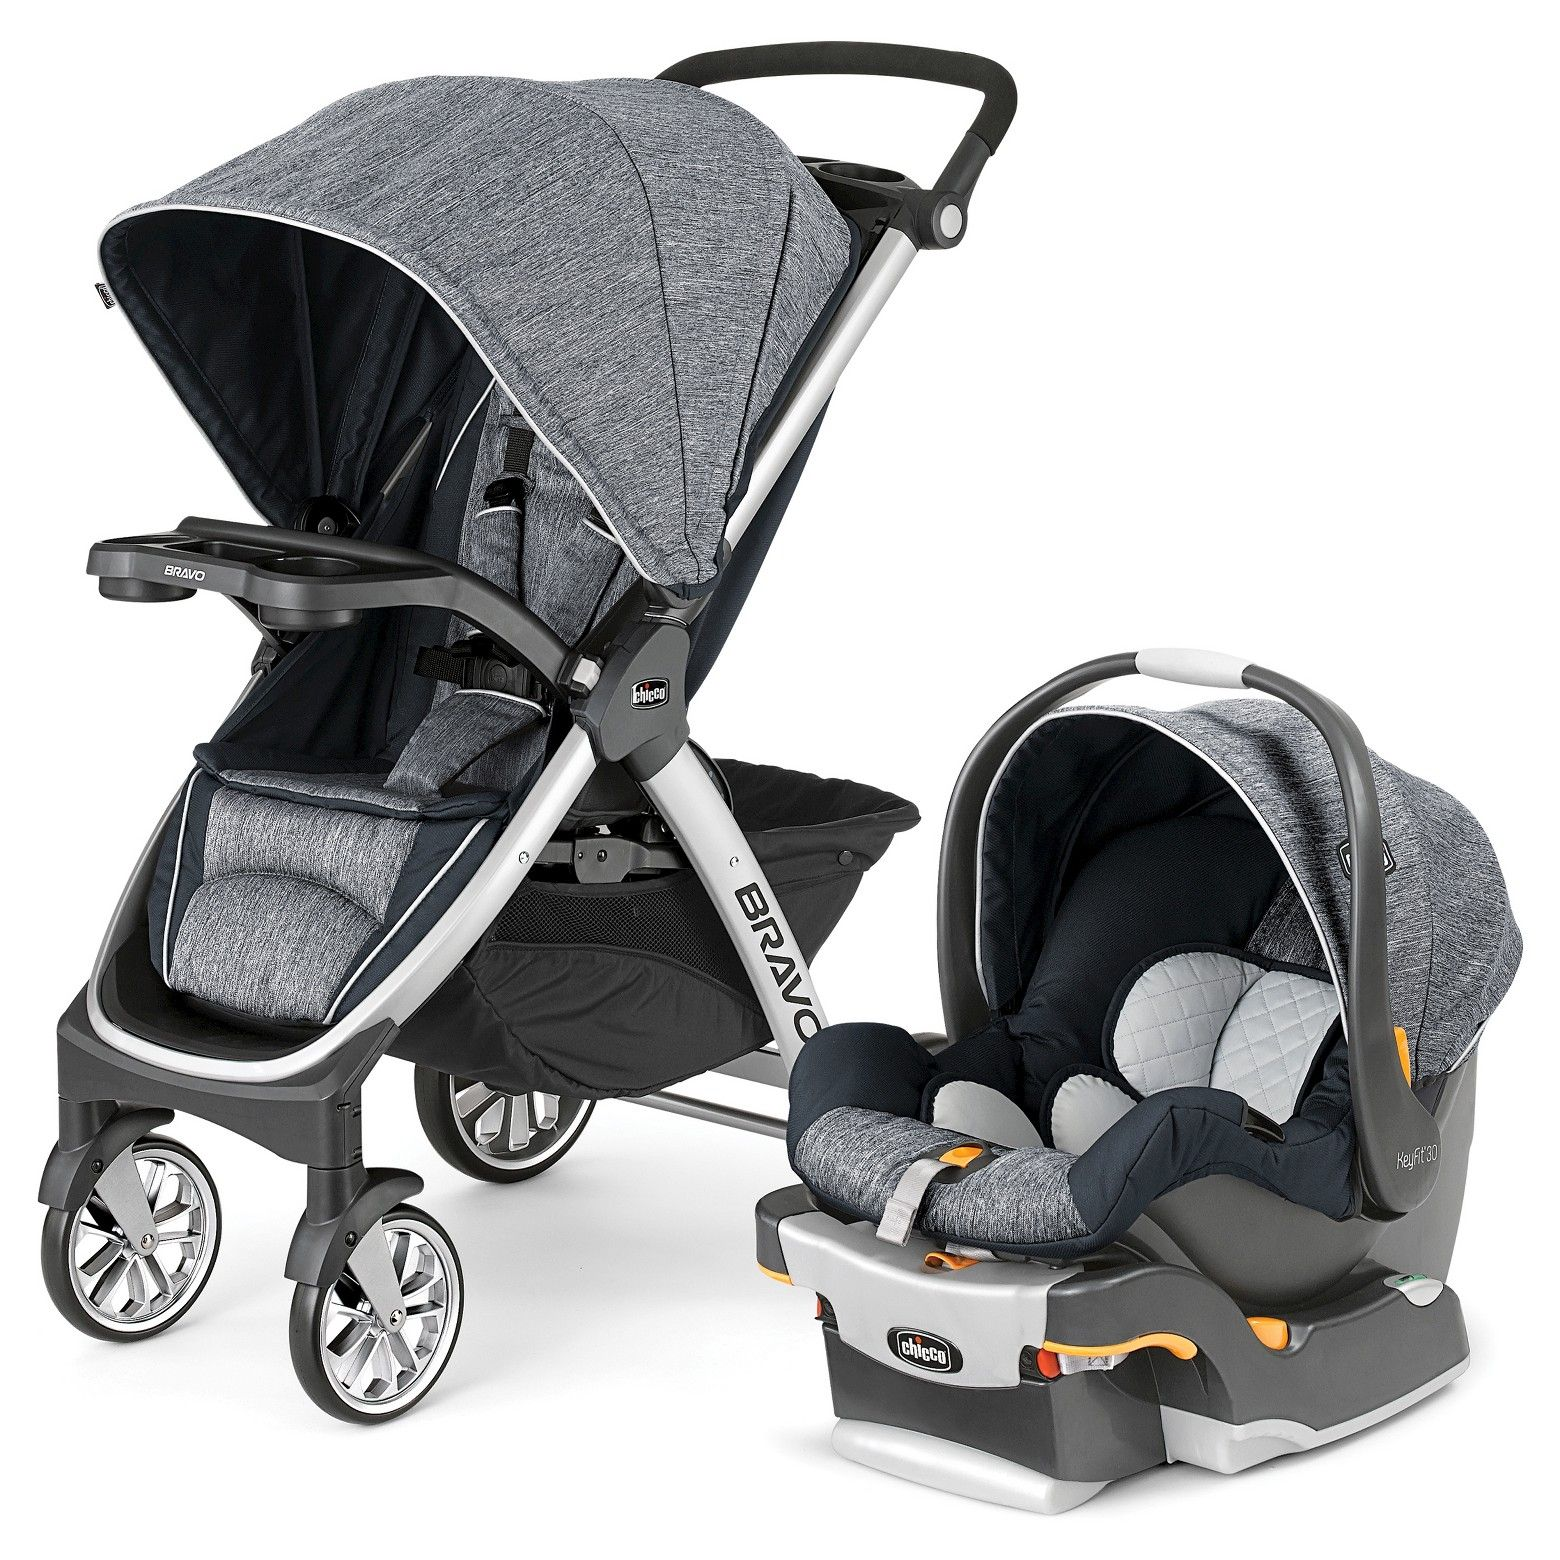 This travel system was a LIFESAVER and super convenient to